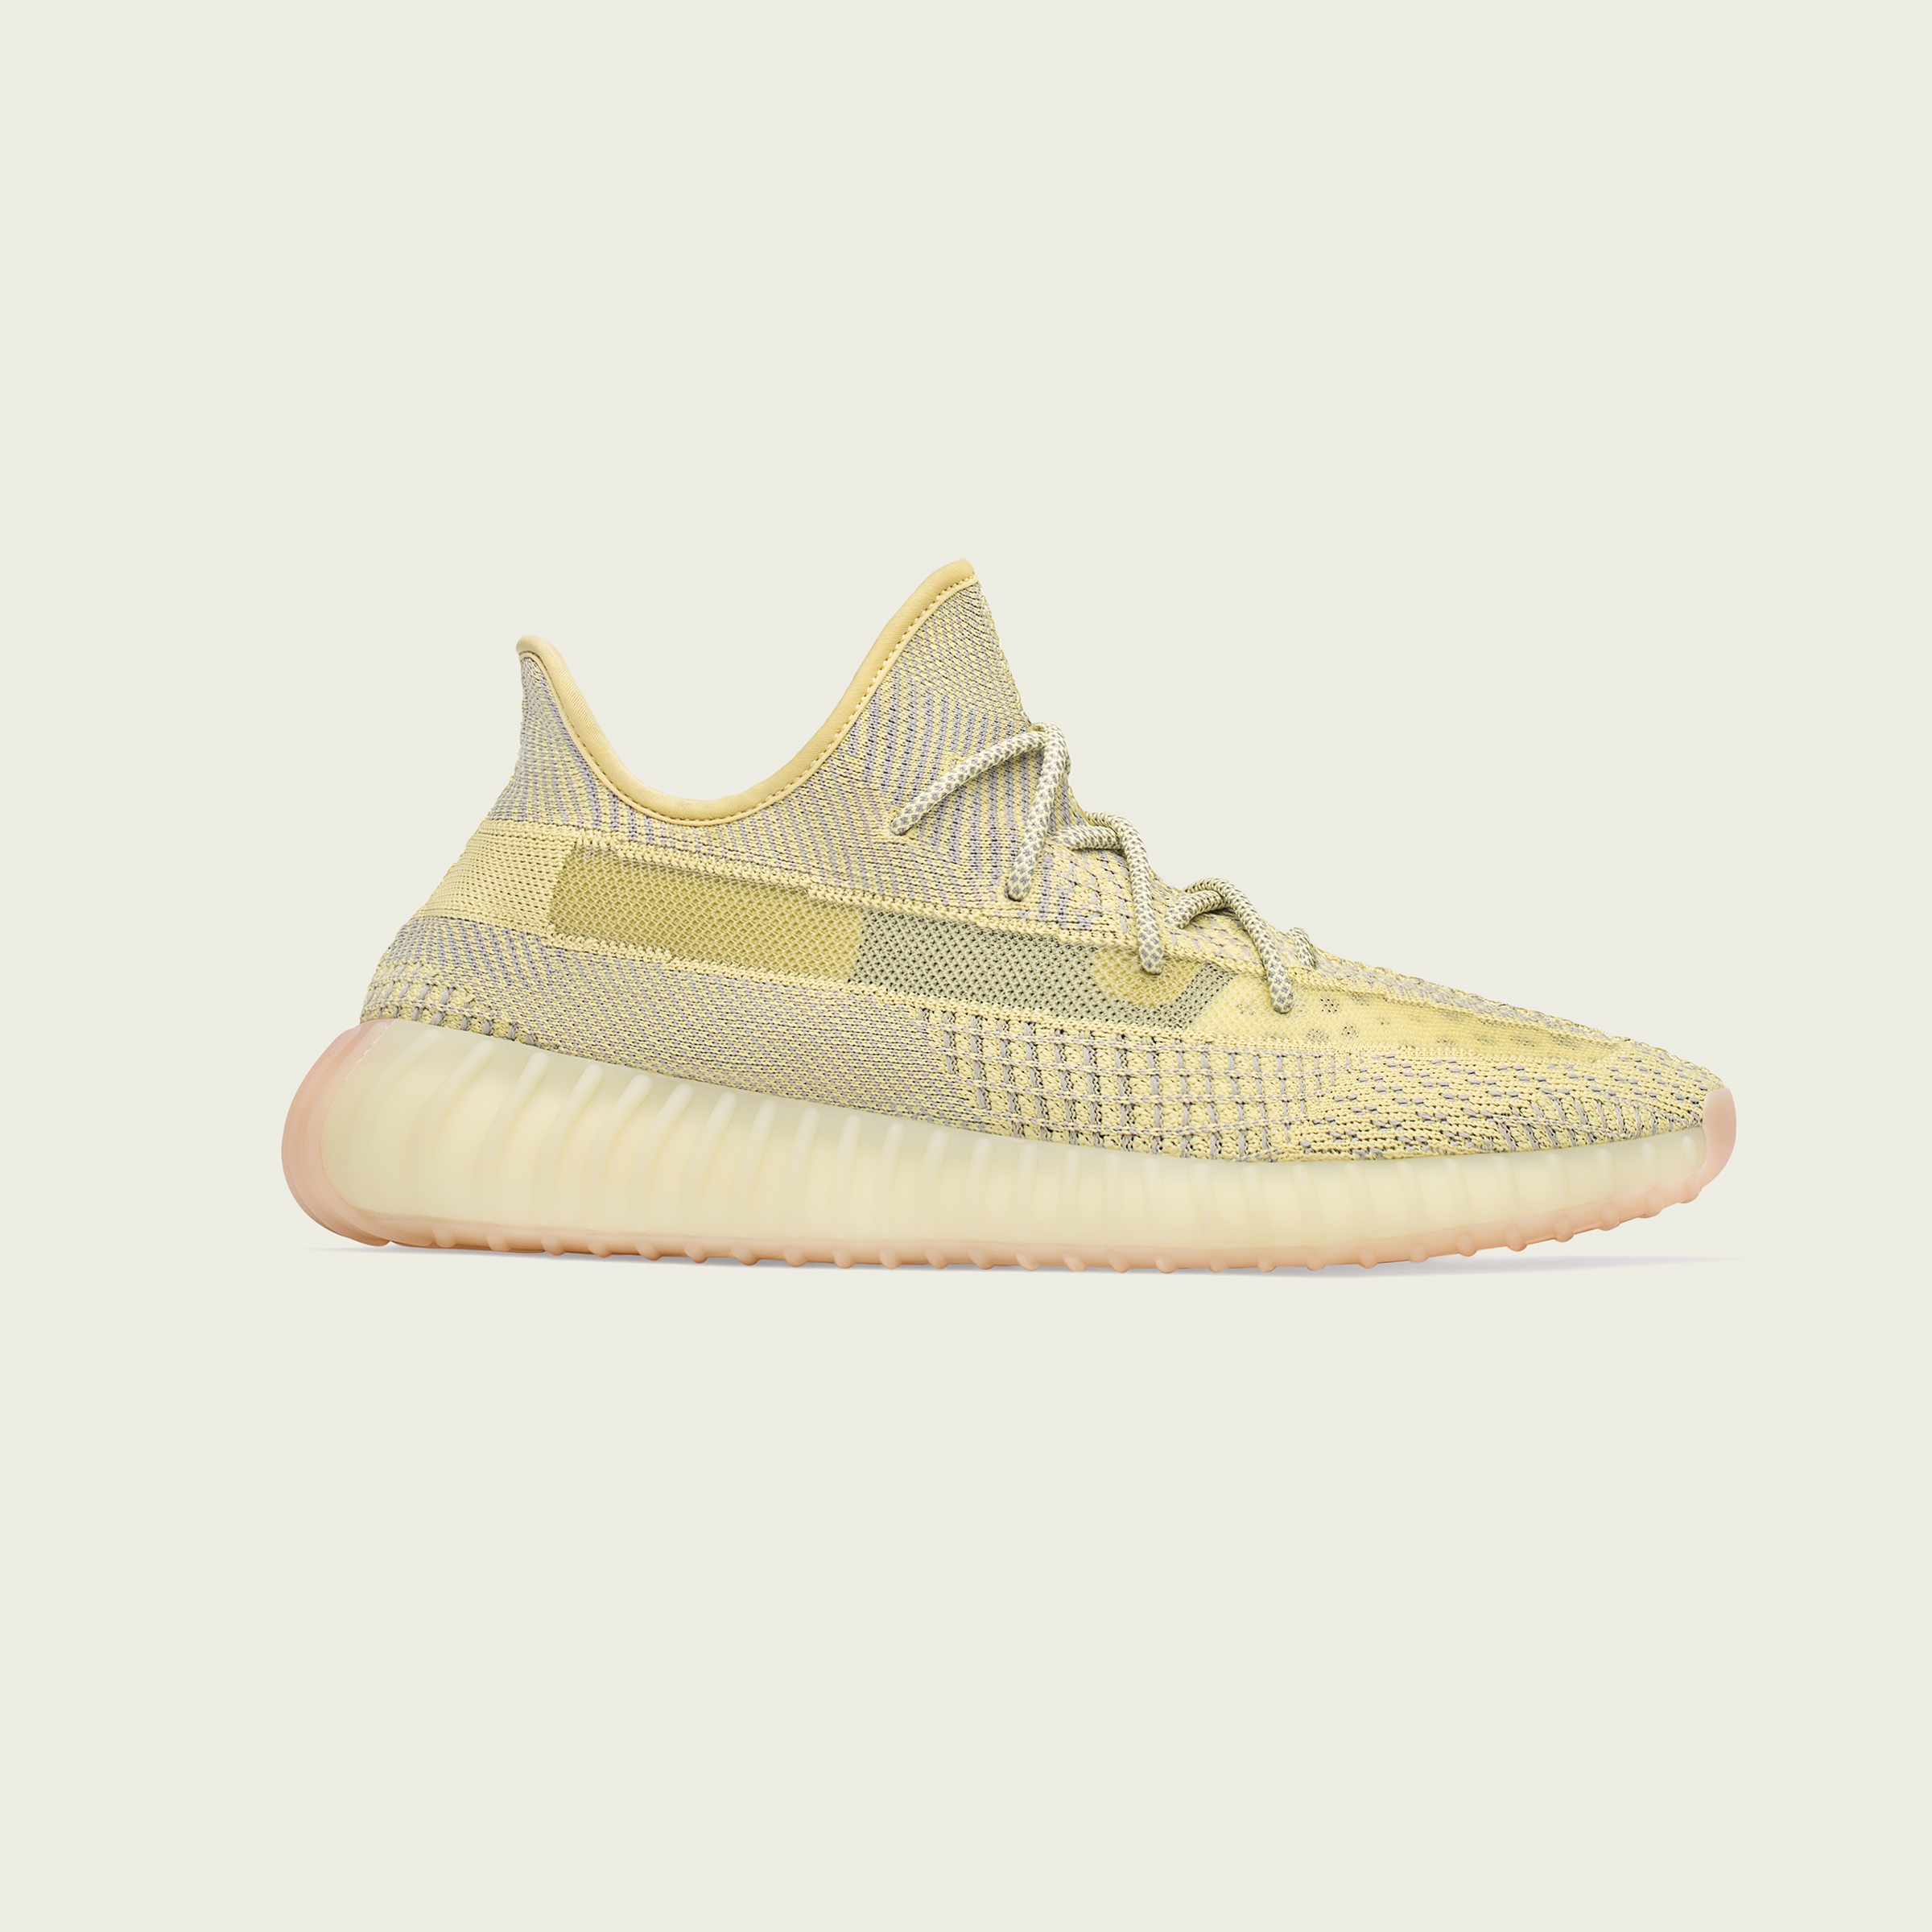 adidas YEEZY BOOST 350 v2 'Antlia' Non-Reflective | SOLD OUT